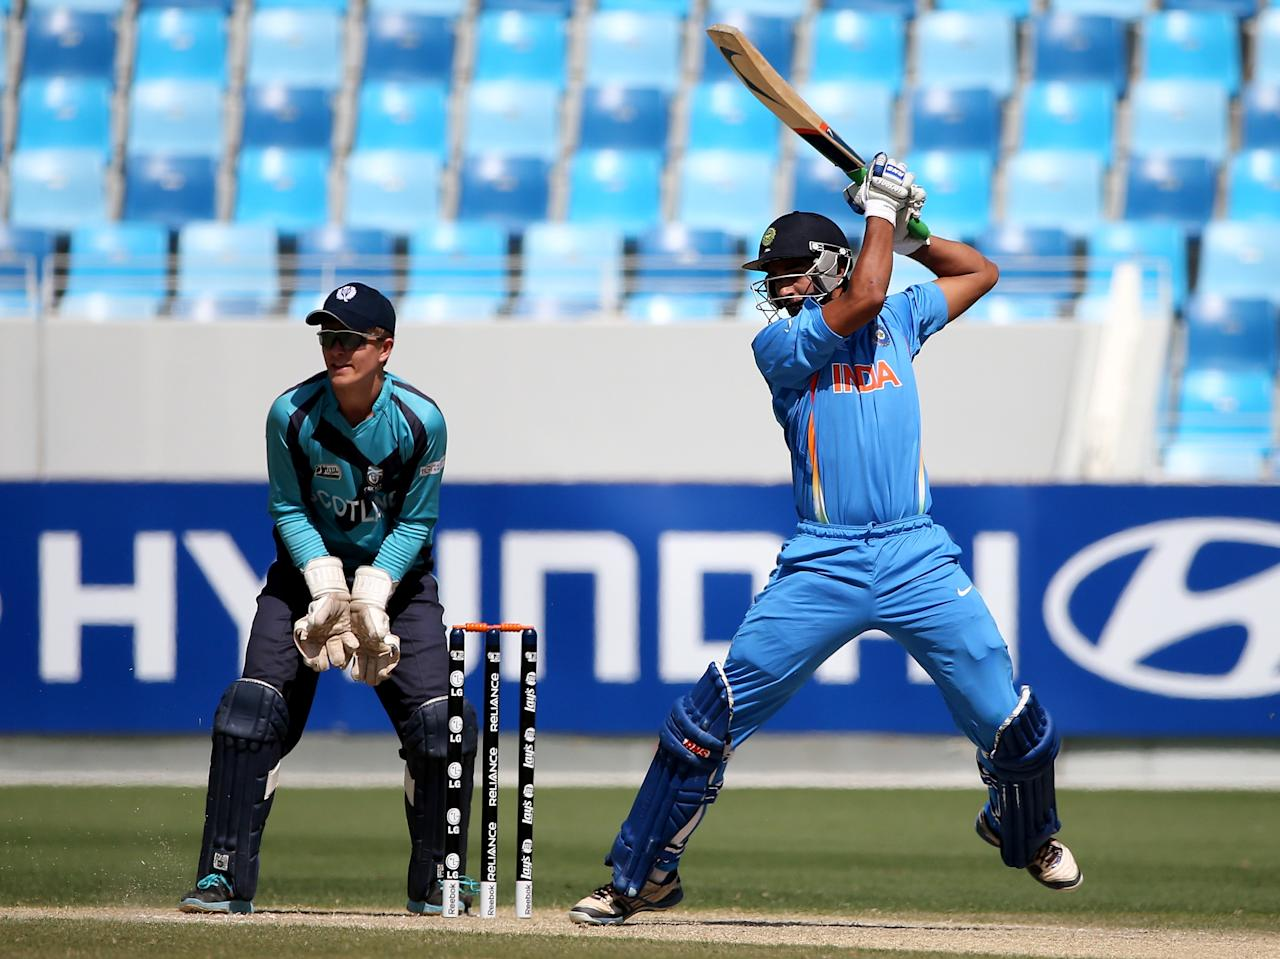 DUBAI, UNITED ARAB EMIRATES - FEBRUARY 17:  Deepak Hooda of India bats as Alex Baum looks on during the ICC U19 Cricket World Cup 2014 match between India and Scotland at the Dubai Sports City Cricket Stadium on February 17, 2014 in Dubai, United Arab Emirates.  (Photo by Francois Nel - IDI/IDI via Getty Images)